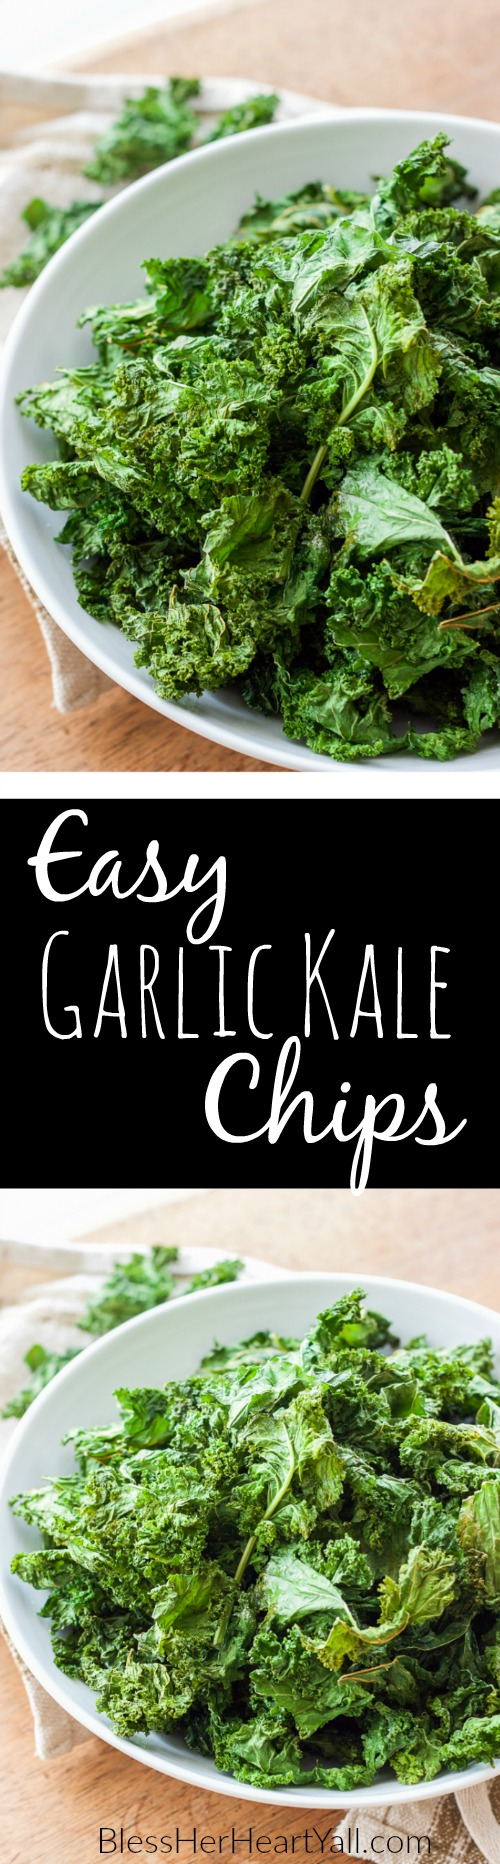 garlic kale chips | garlic, crunchy, healthy, and gluten-free! Made in minutes! OMG so good!